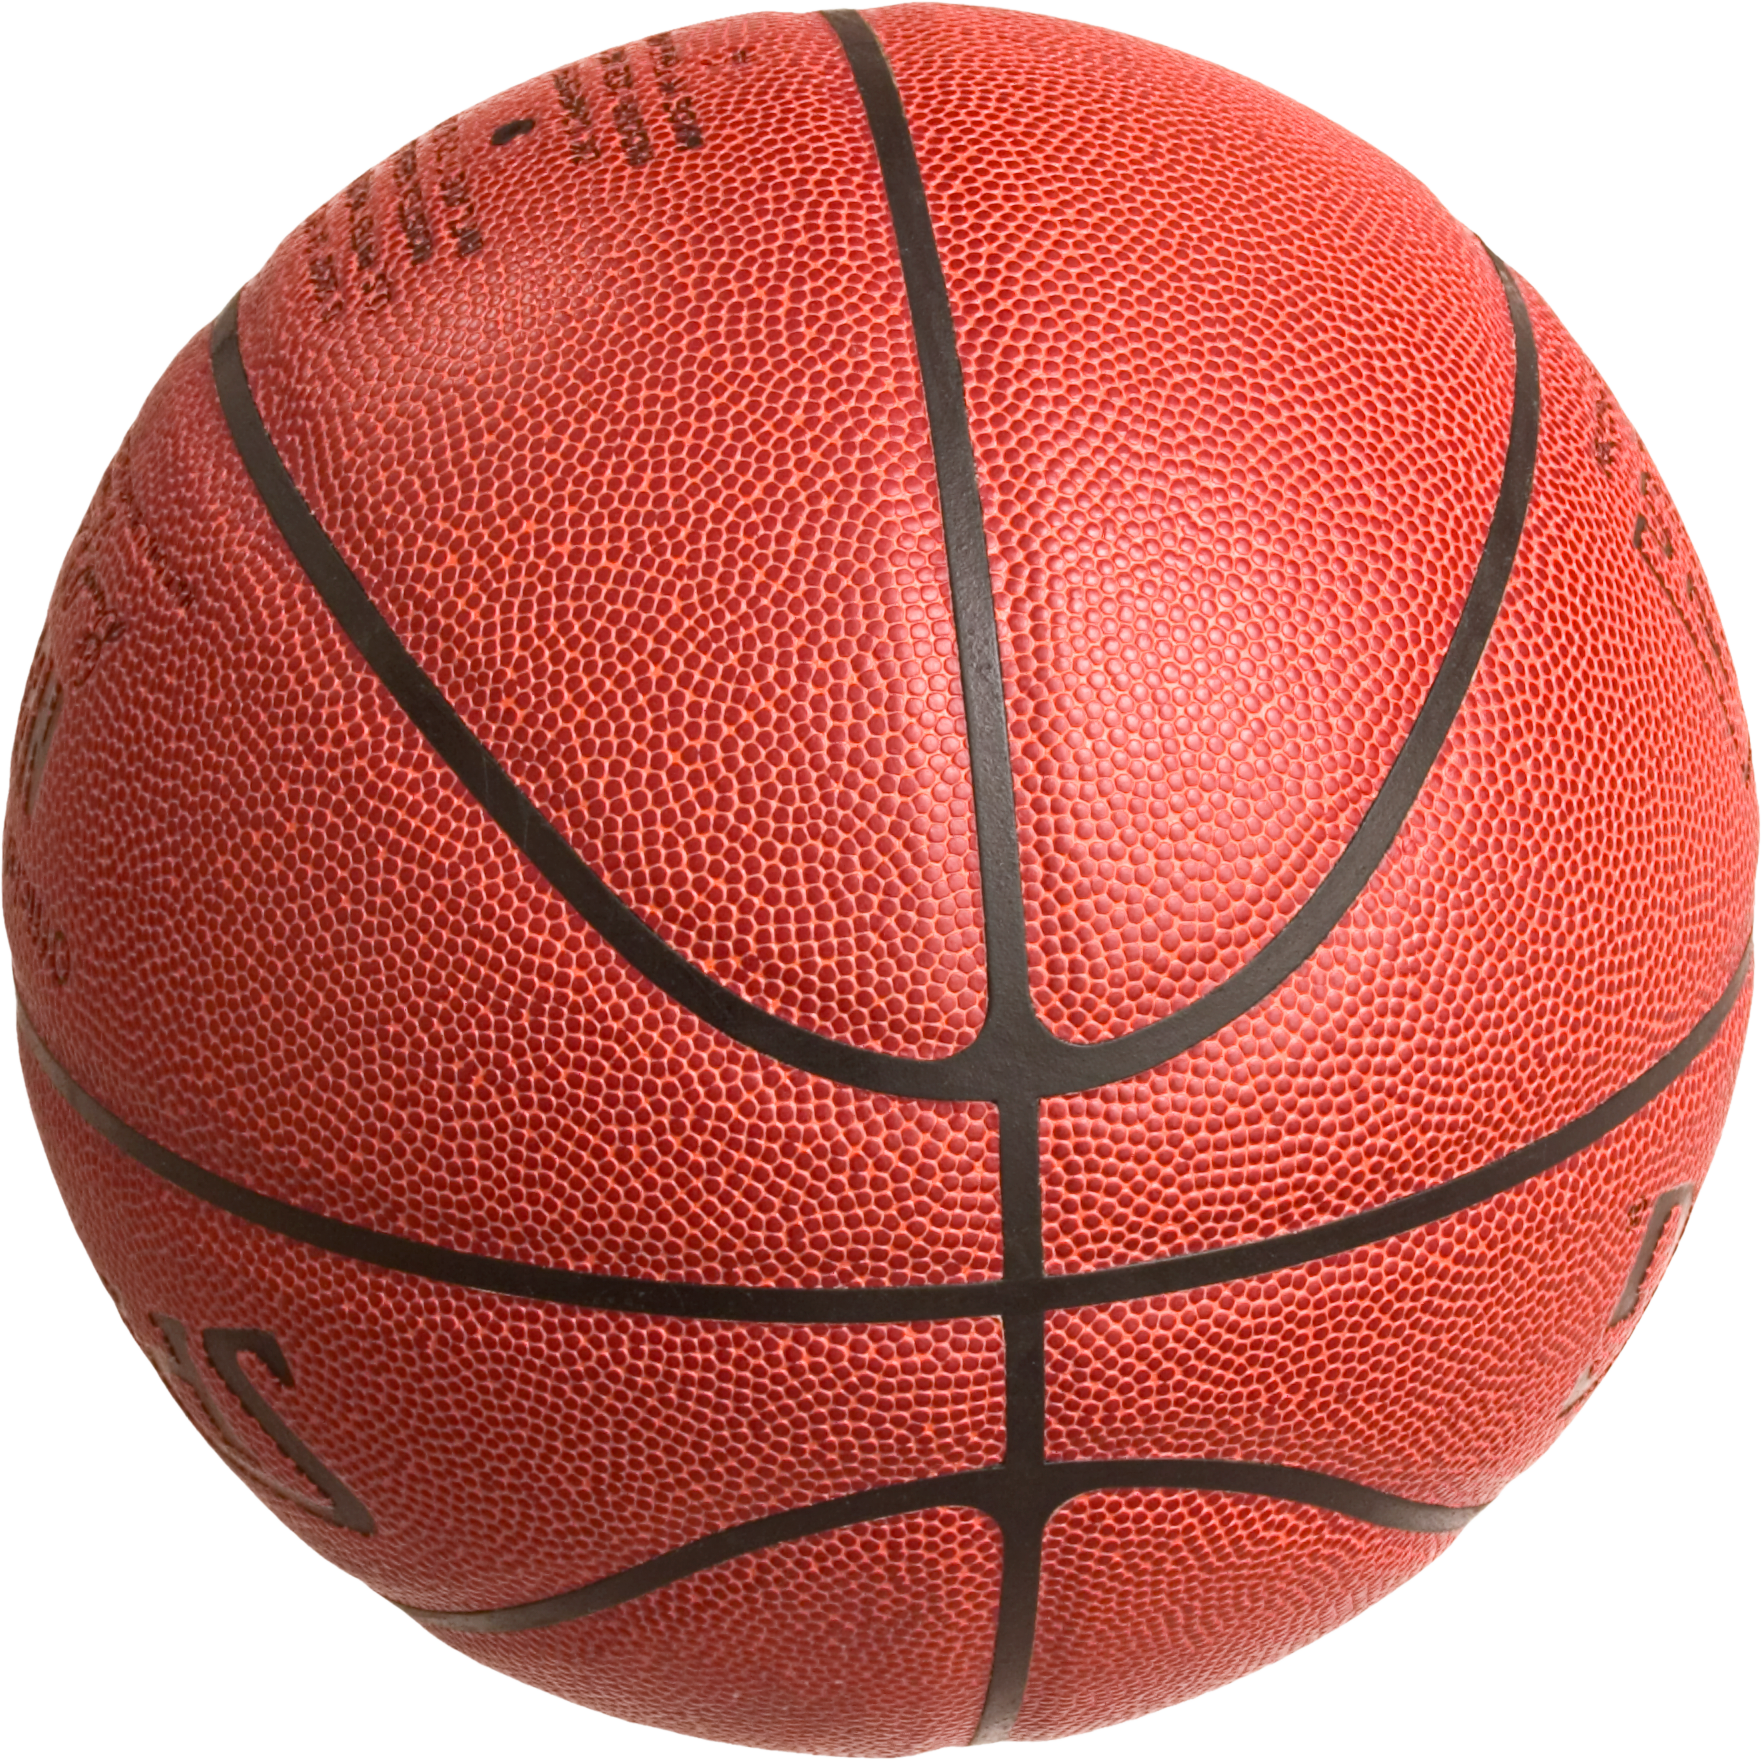 Red white blue basketball clipart graphic transparent Basketball Transparent PNG Pictures - Free Icons and PNG Backgrounds graphic transparent